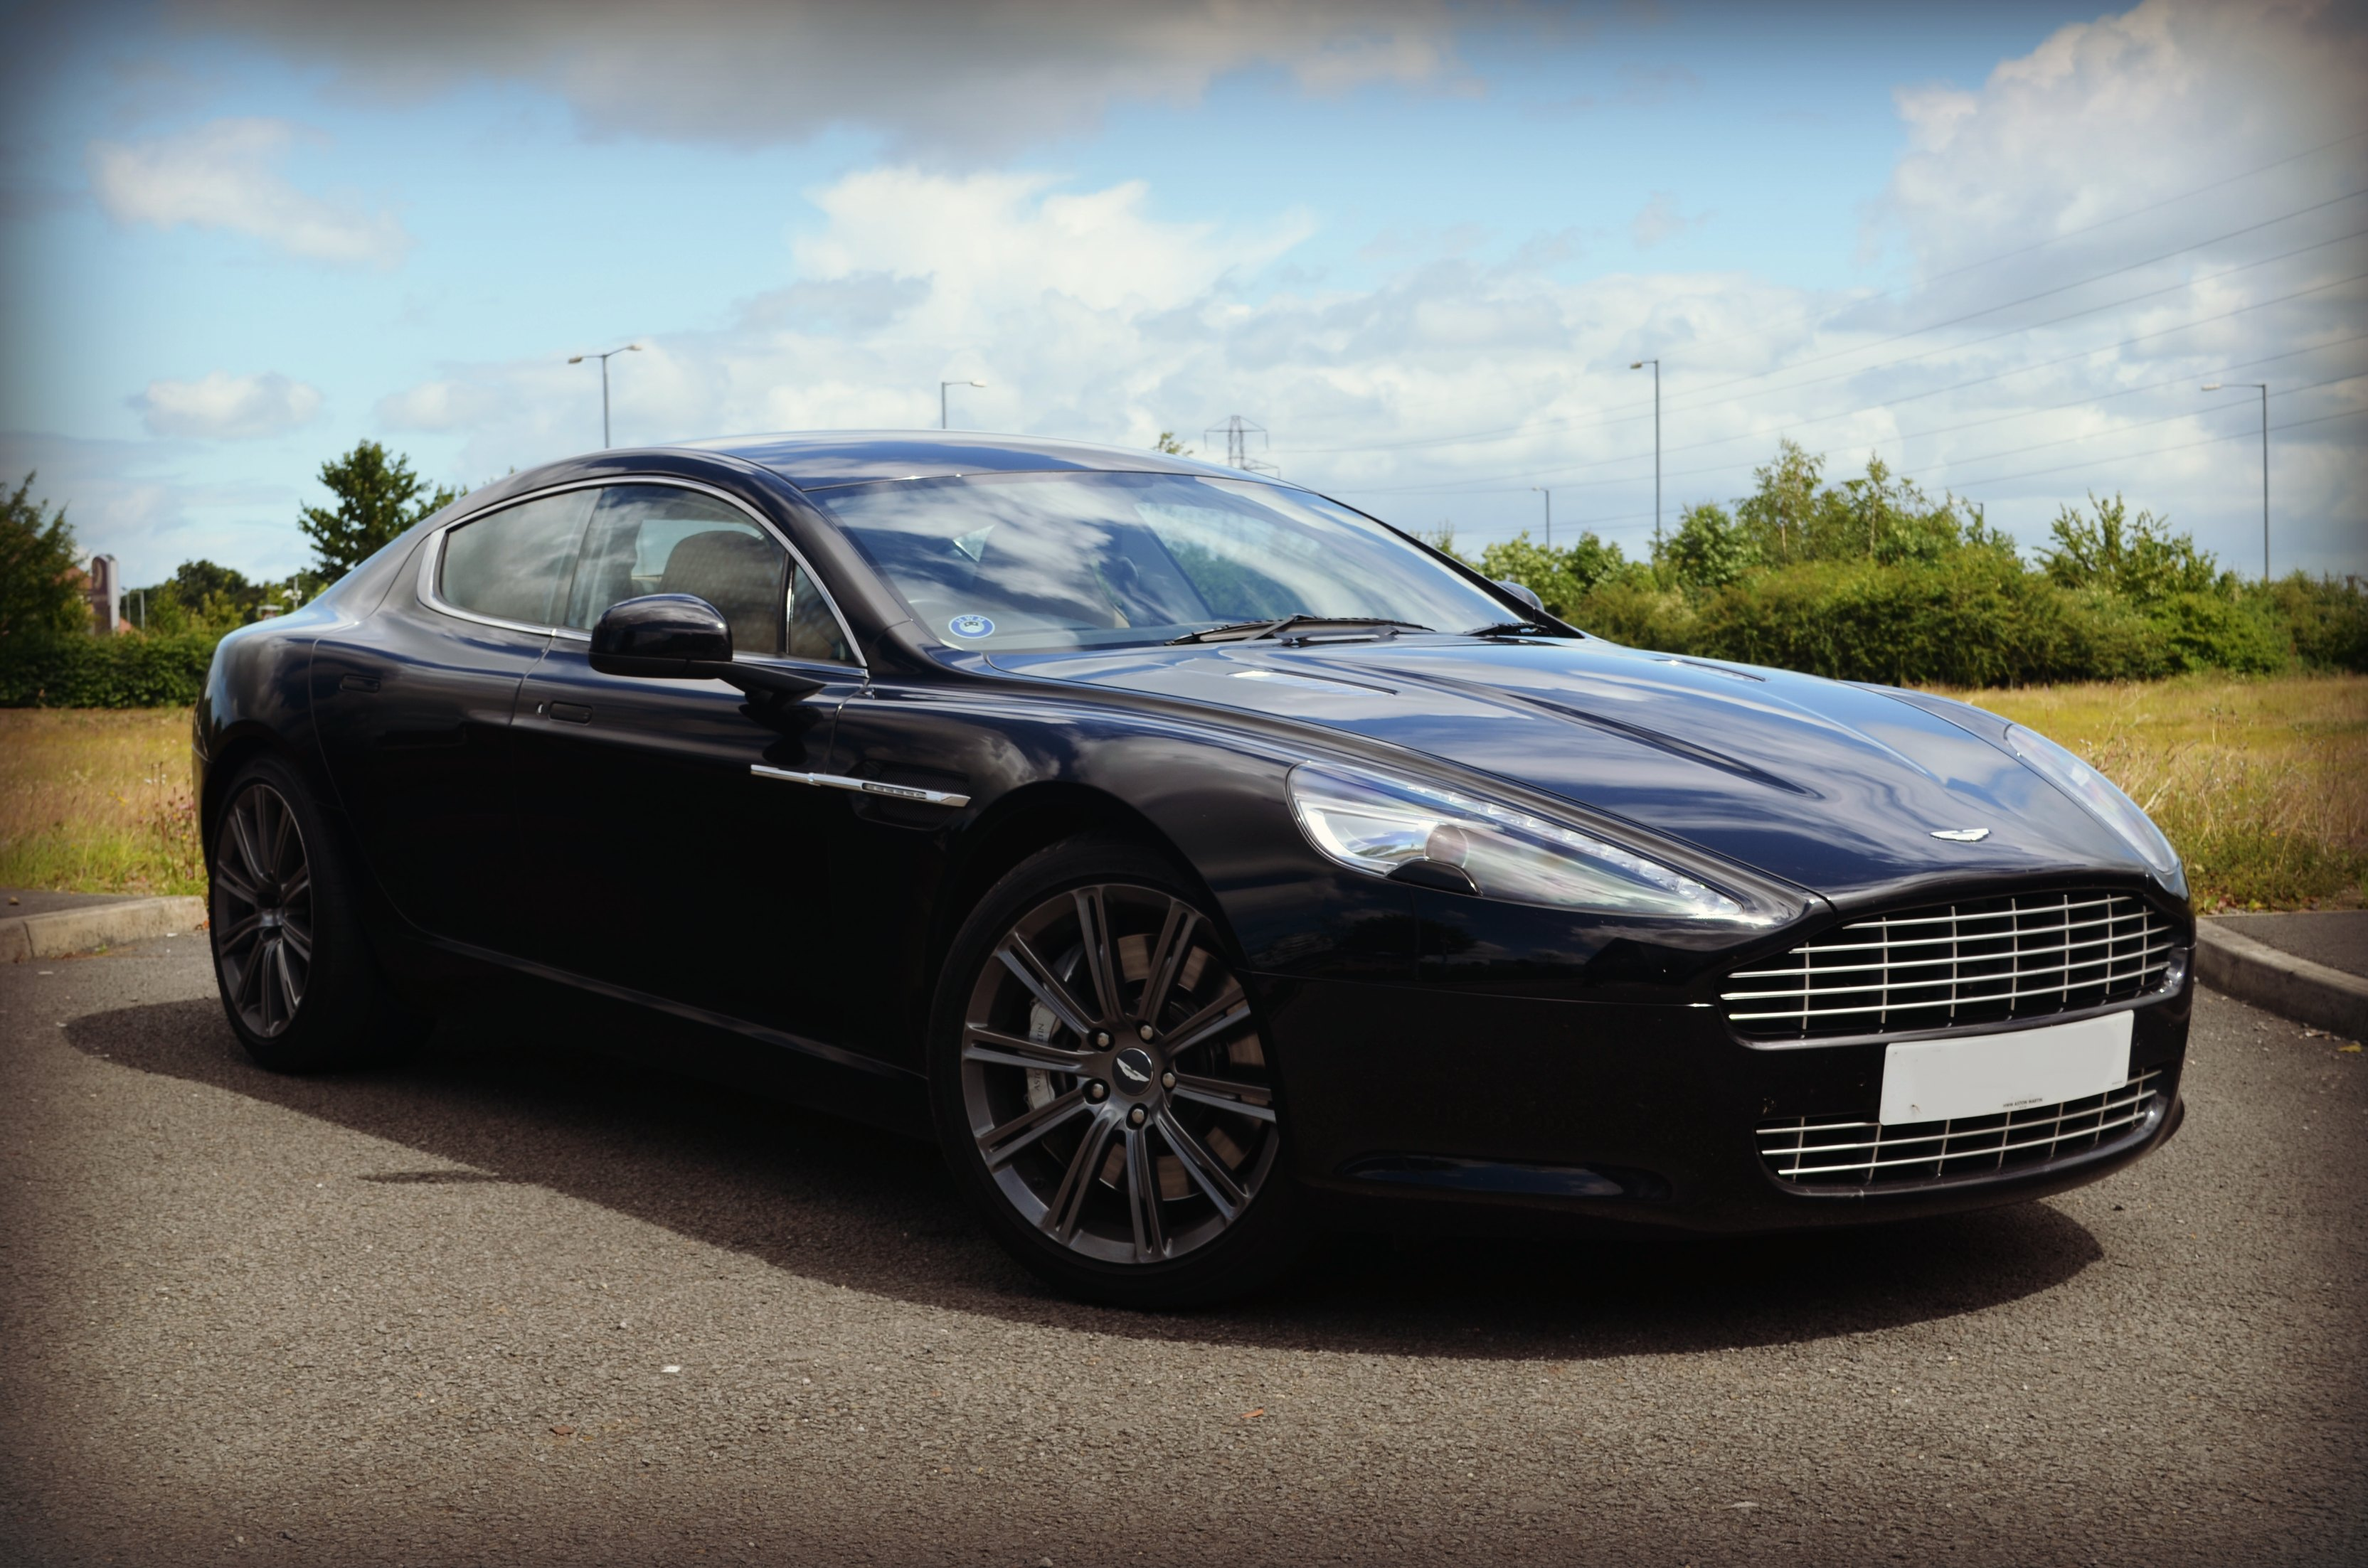 aston martin rapide drive south west luxury prestige sports car hire in wiltshire somerset